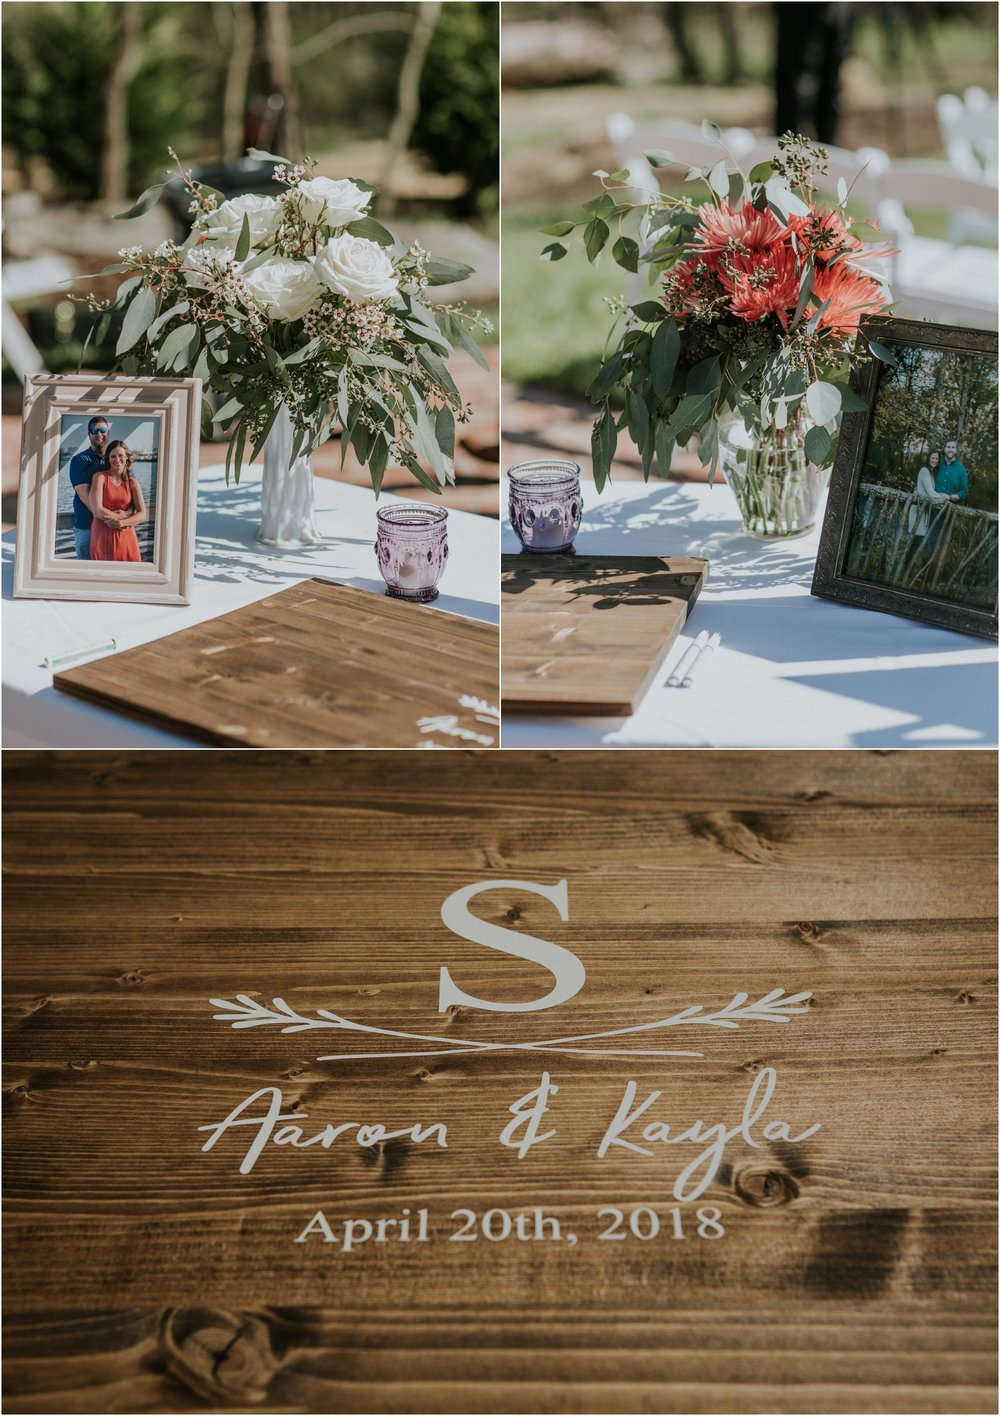 millstone-limestone-tn-tennessee-rustic-outdoors-pastel-lodge-cabin-venue-wedding-katy-sergent-photographer_0080.jpg